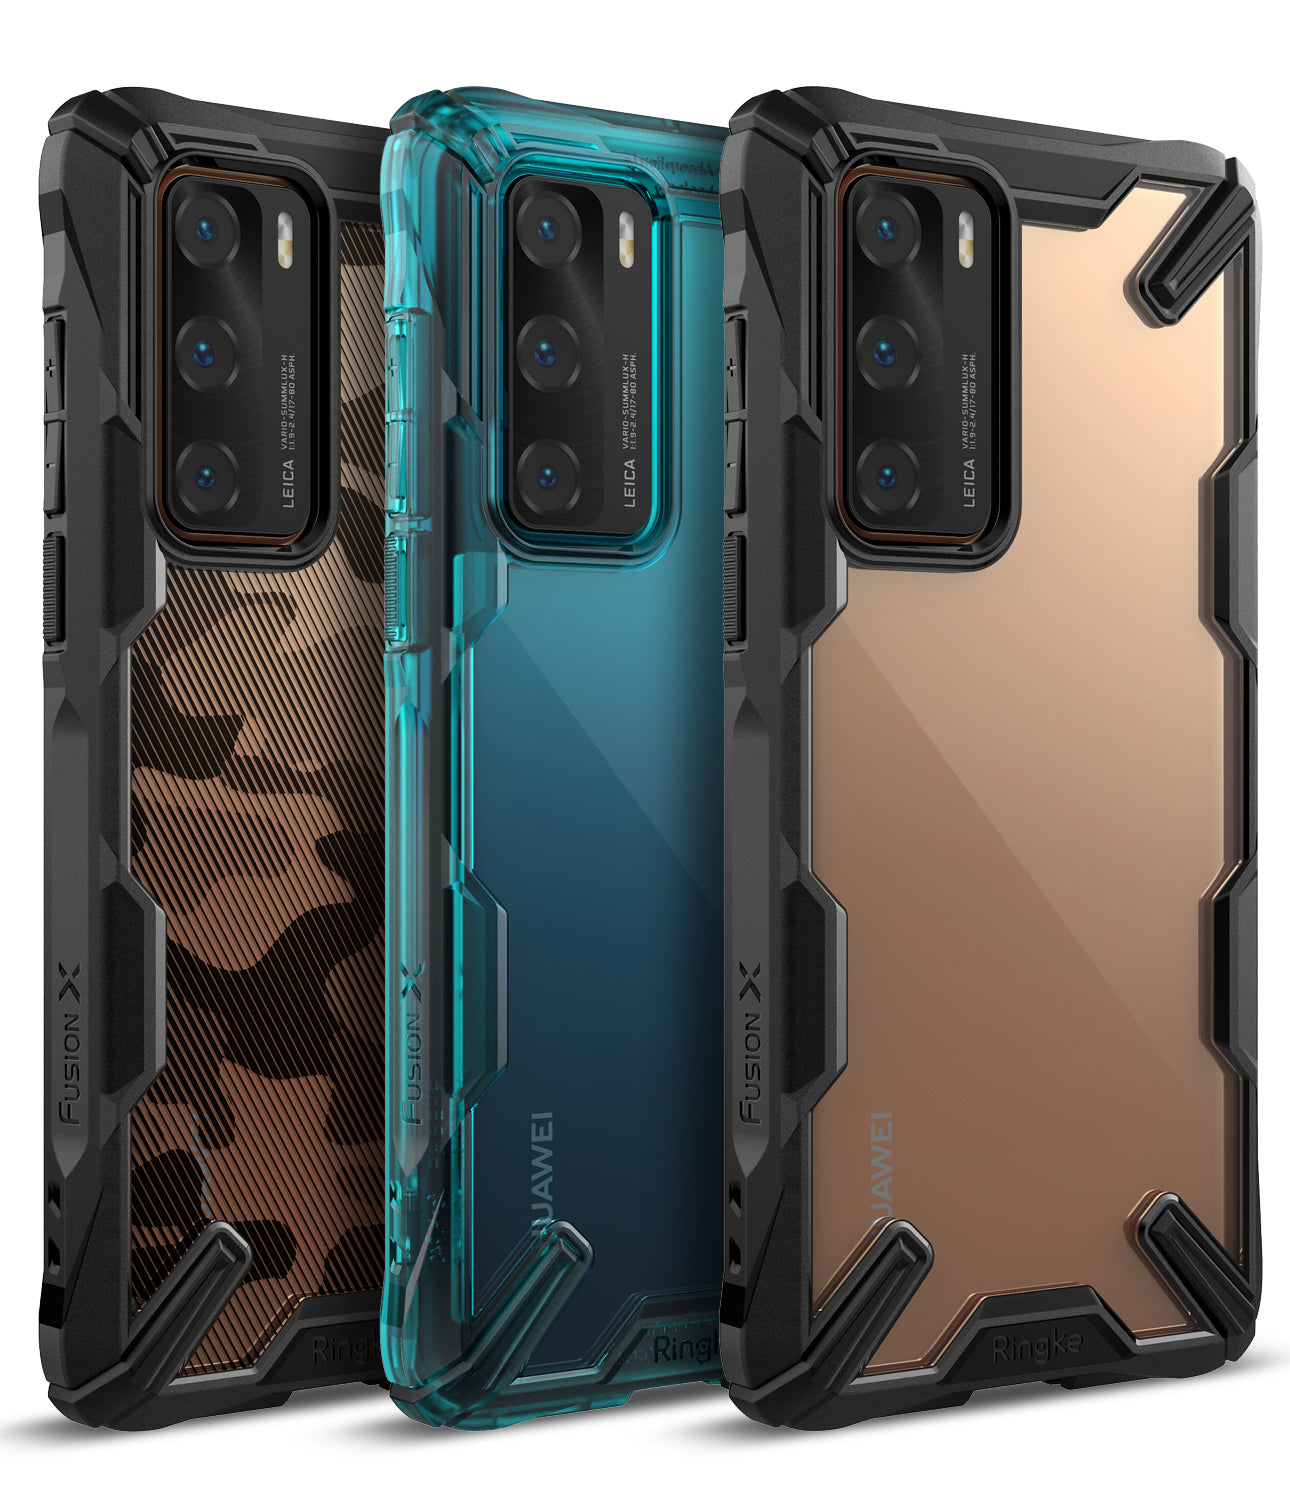 ringke fusion-x designed for huawei p40